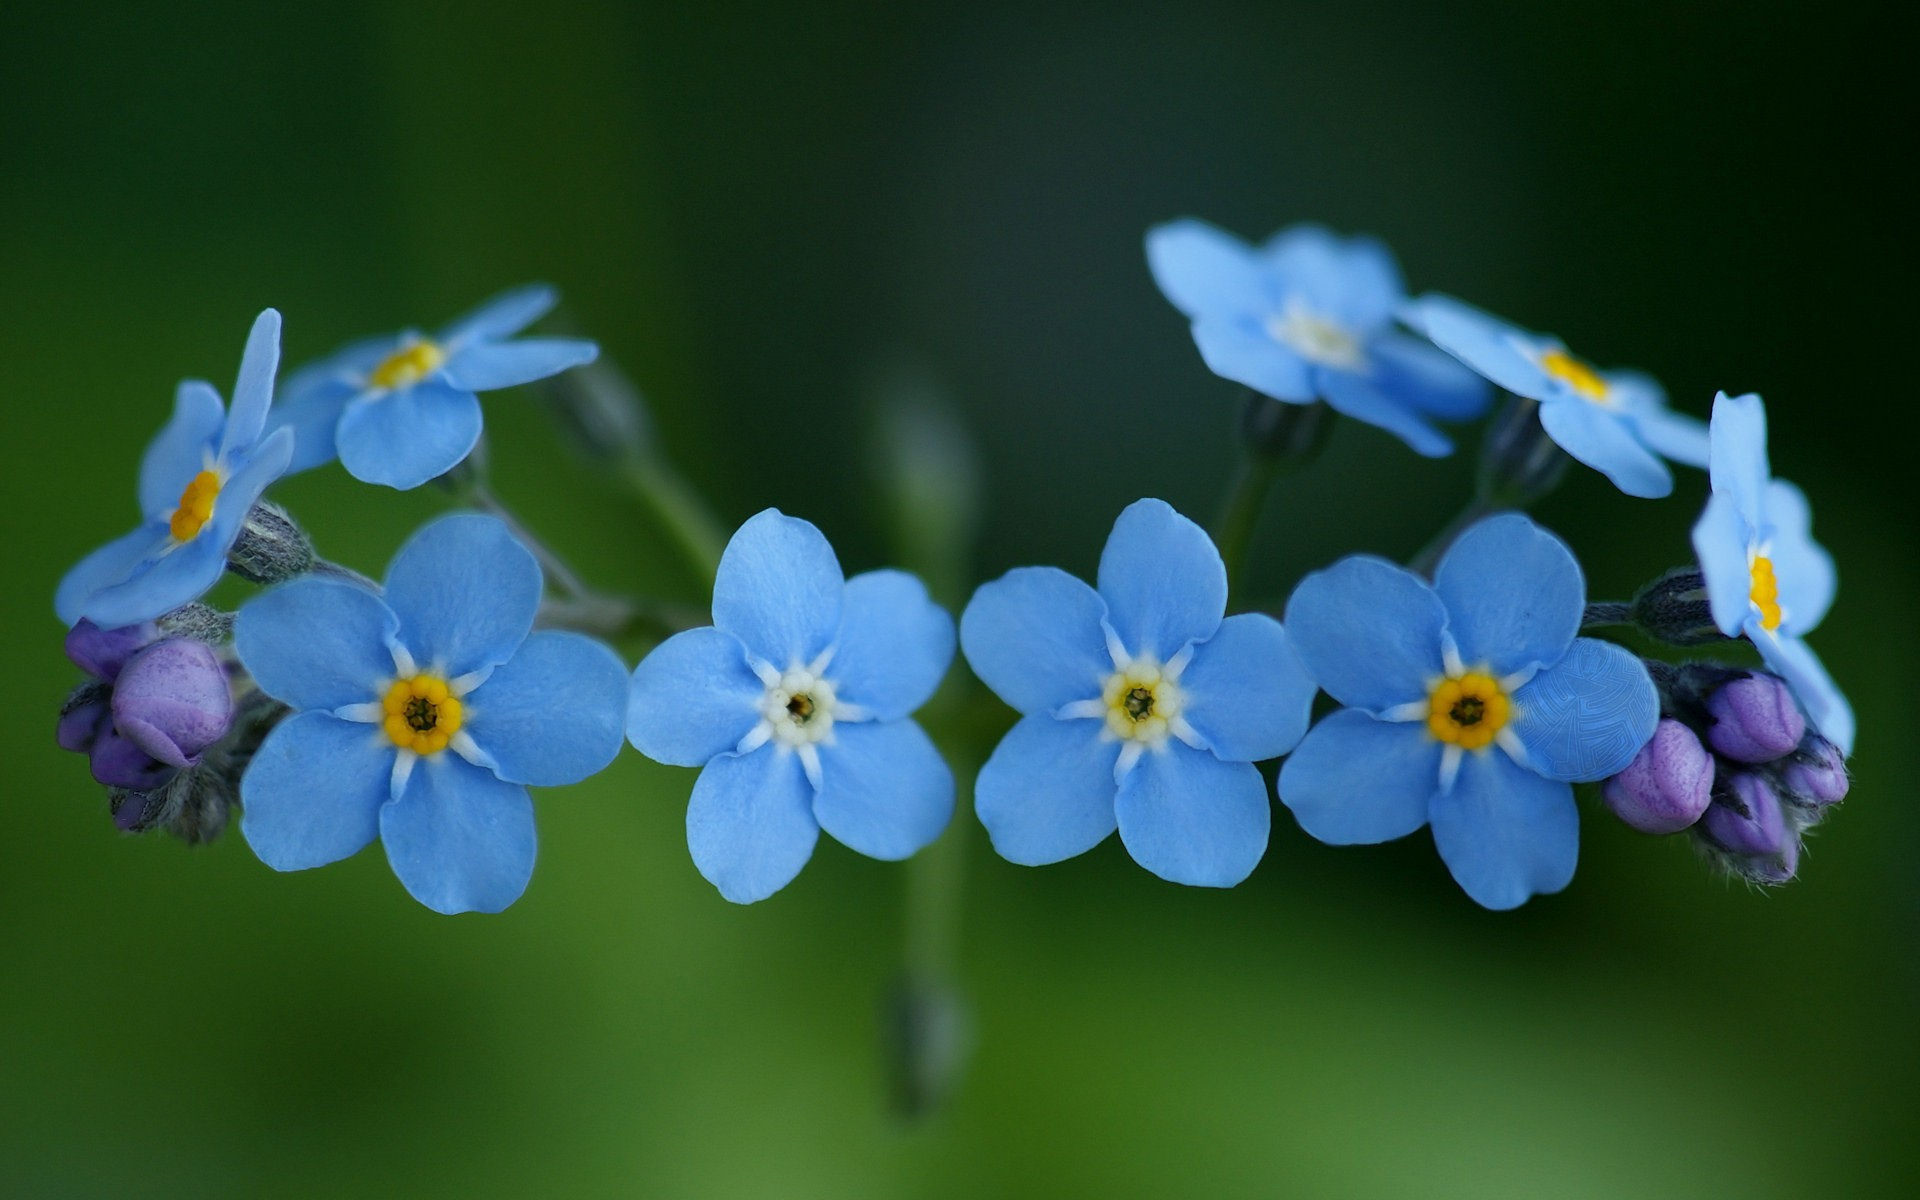 Forget Me Not Flower Hd Desktop